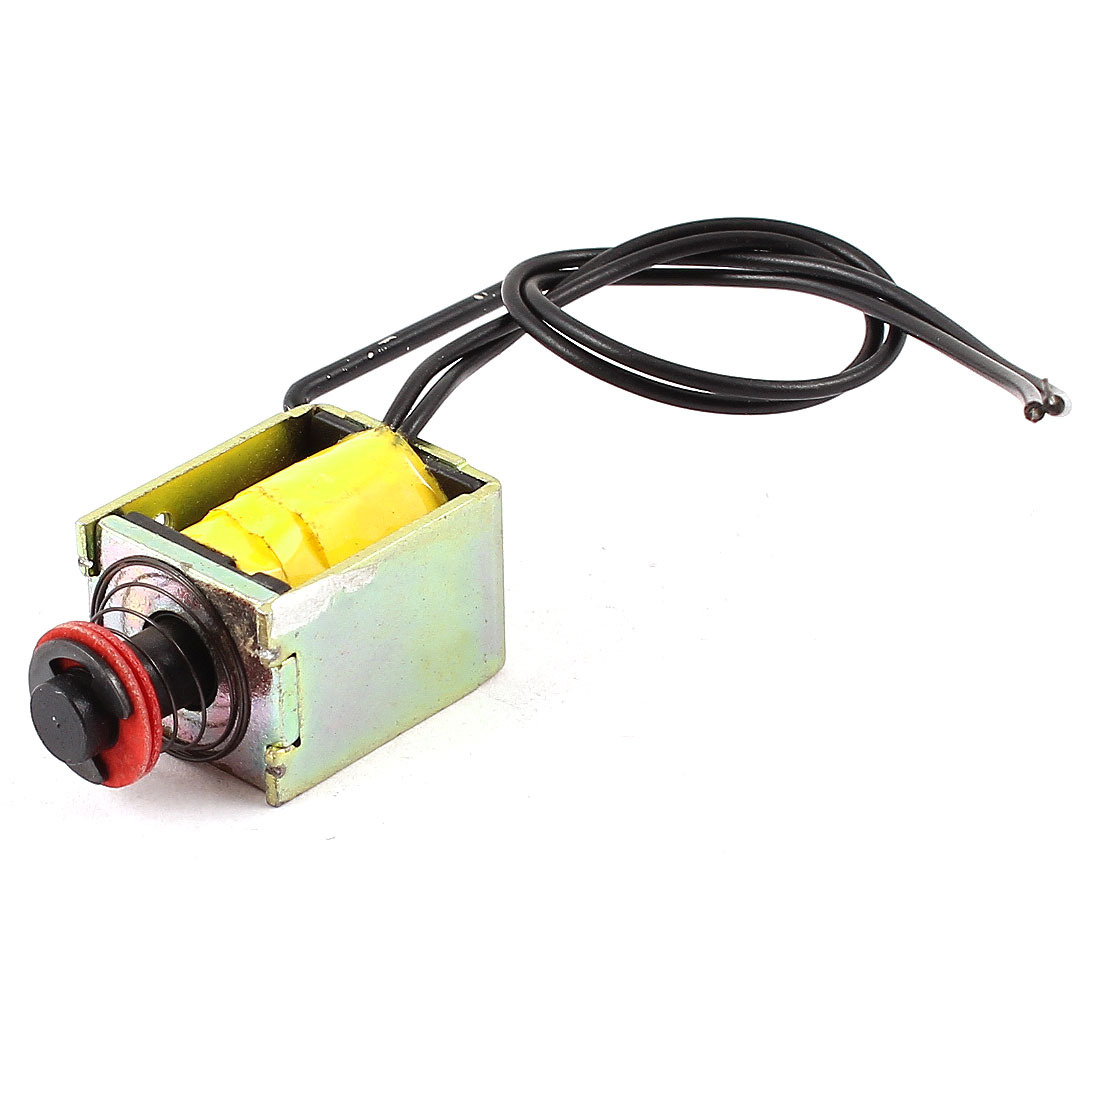 DC 18V 4.62W 1mm 65g 4mm 15g Pull Type Open Frame Linear Motion Solenoid Electromagnet Actuator